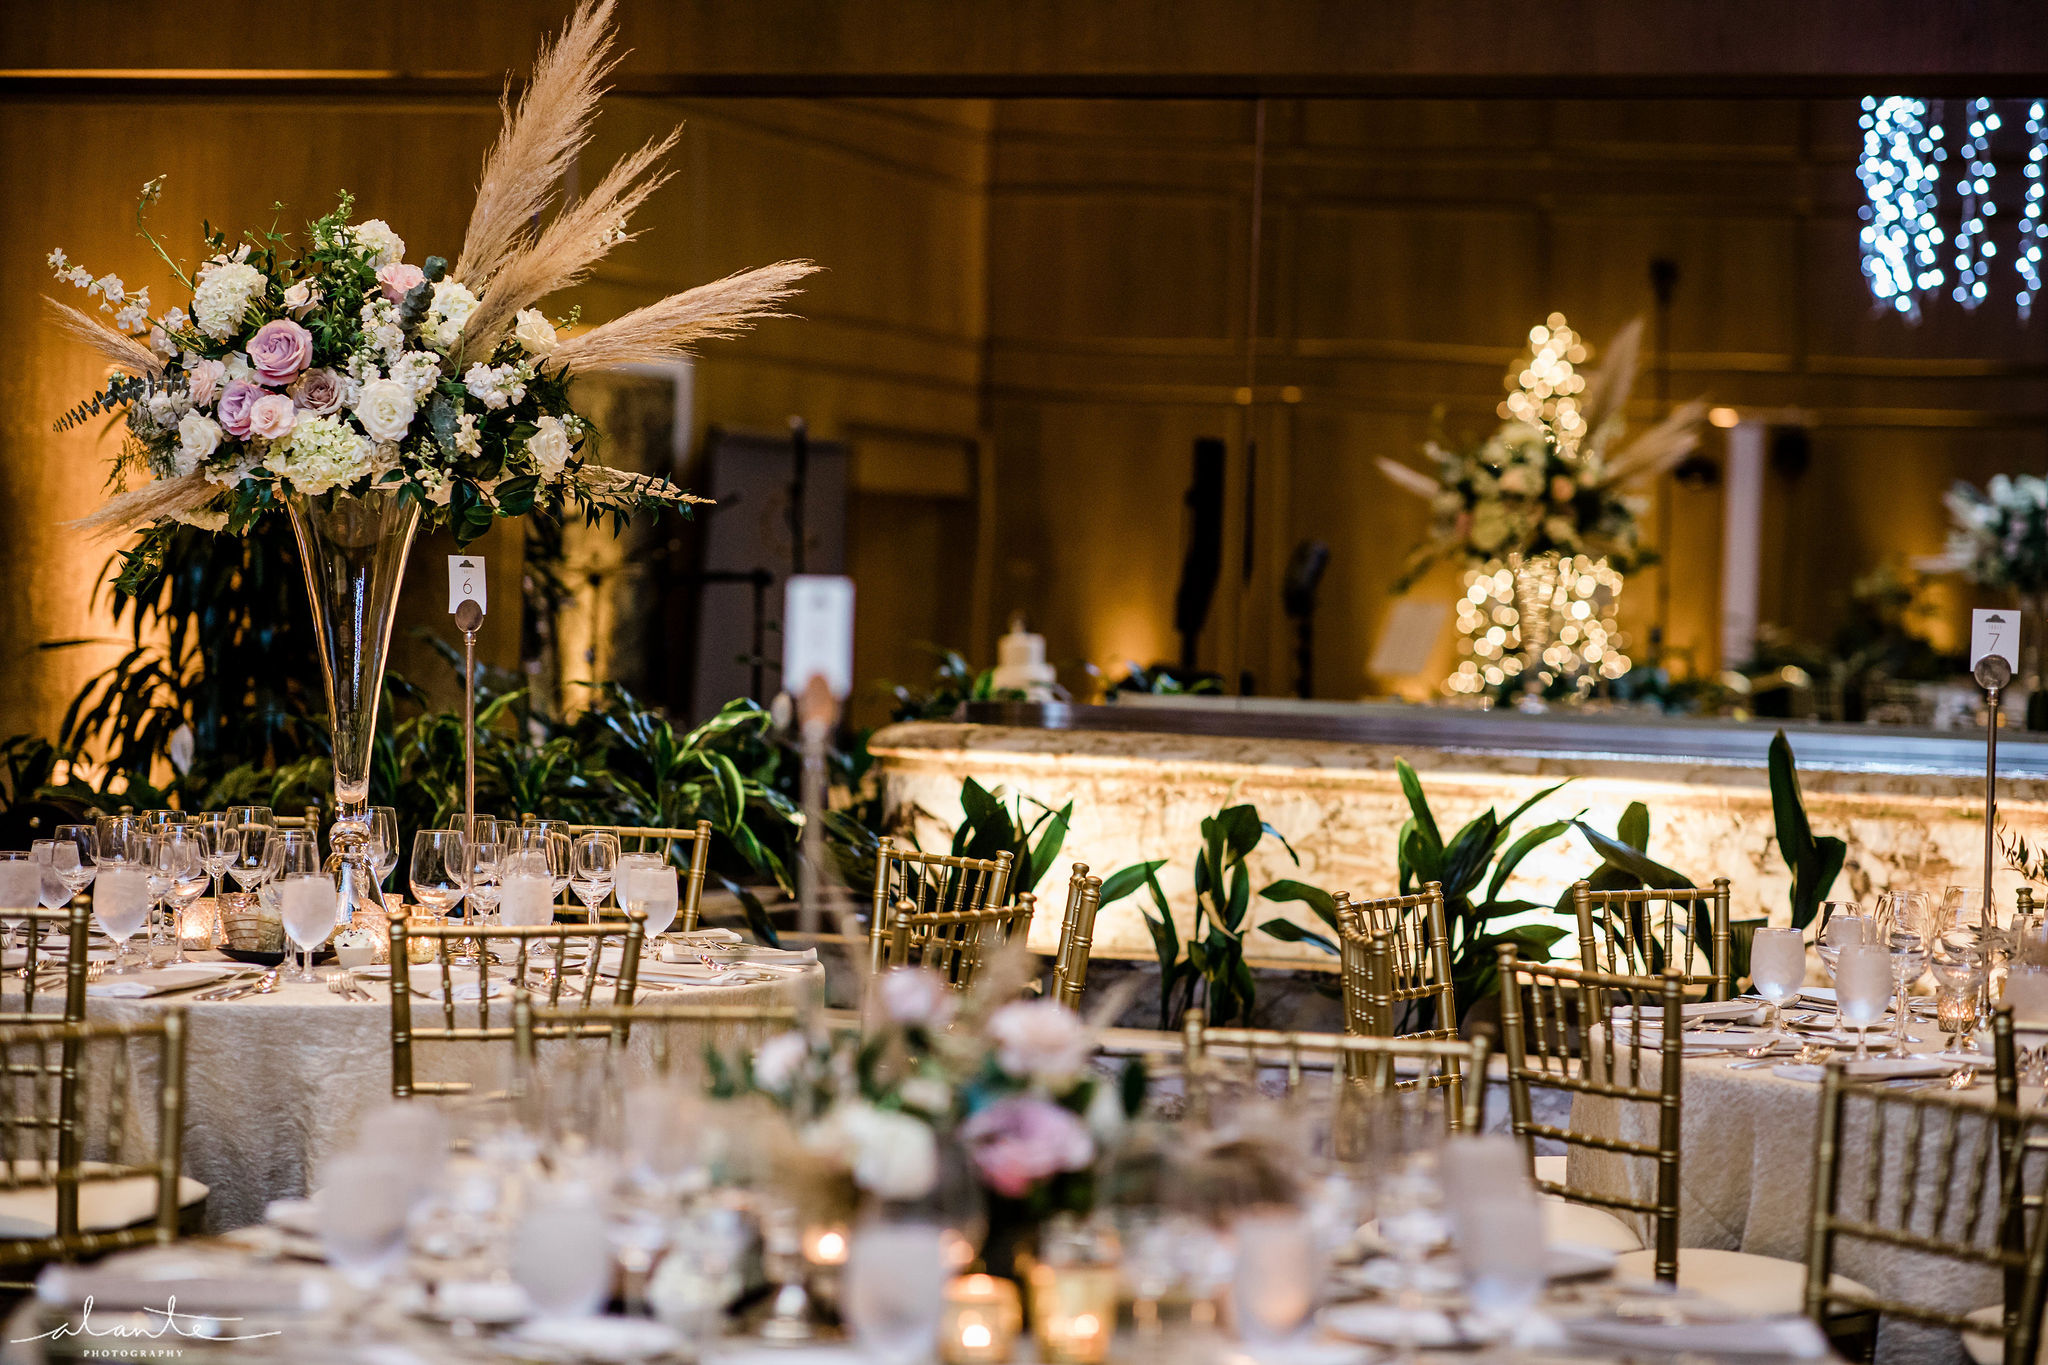 Ballroom winter wedding reception with tall floral arrangements in white and blush flowers with pampas grass on a crystal vase.